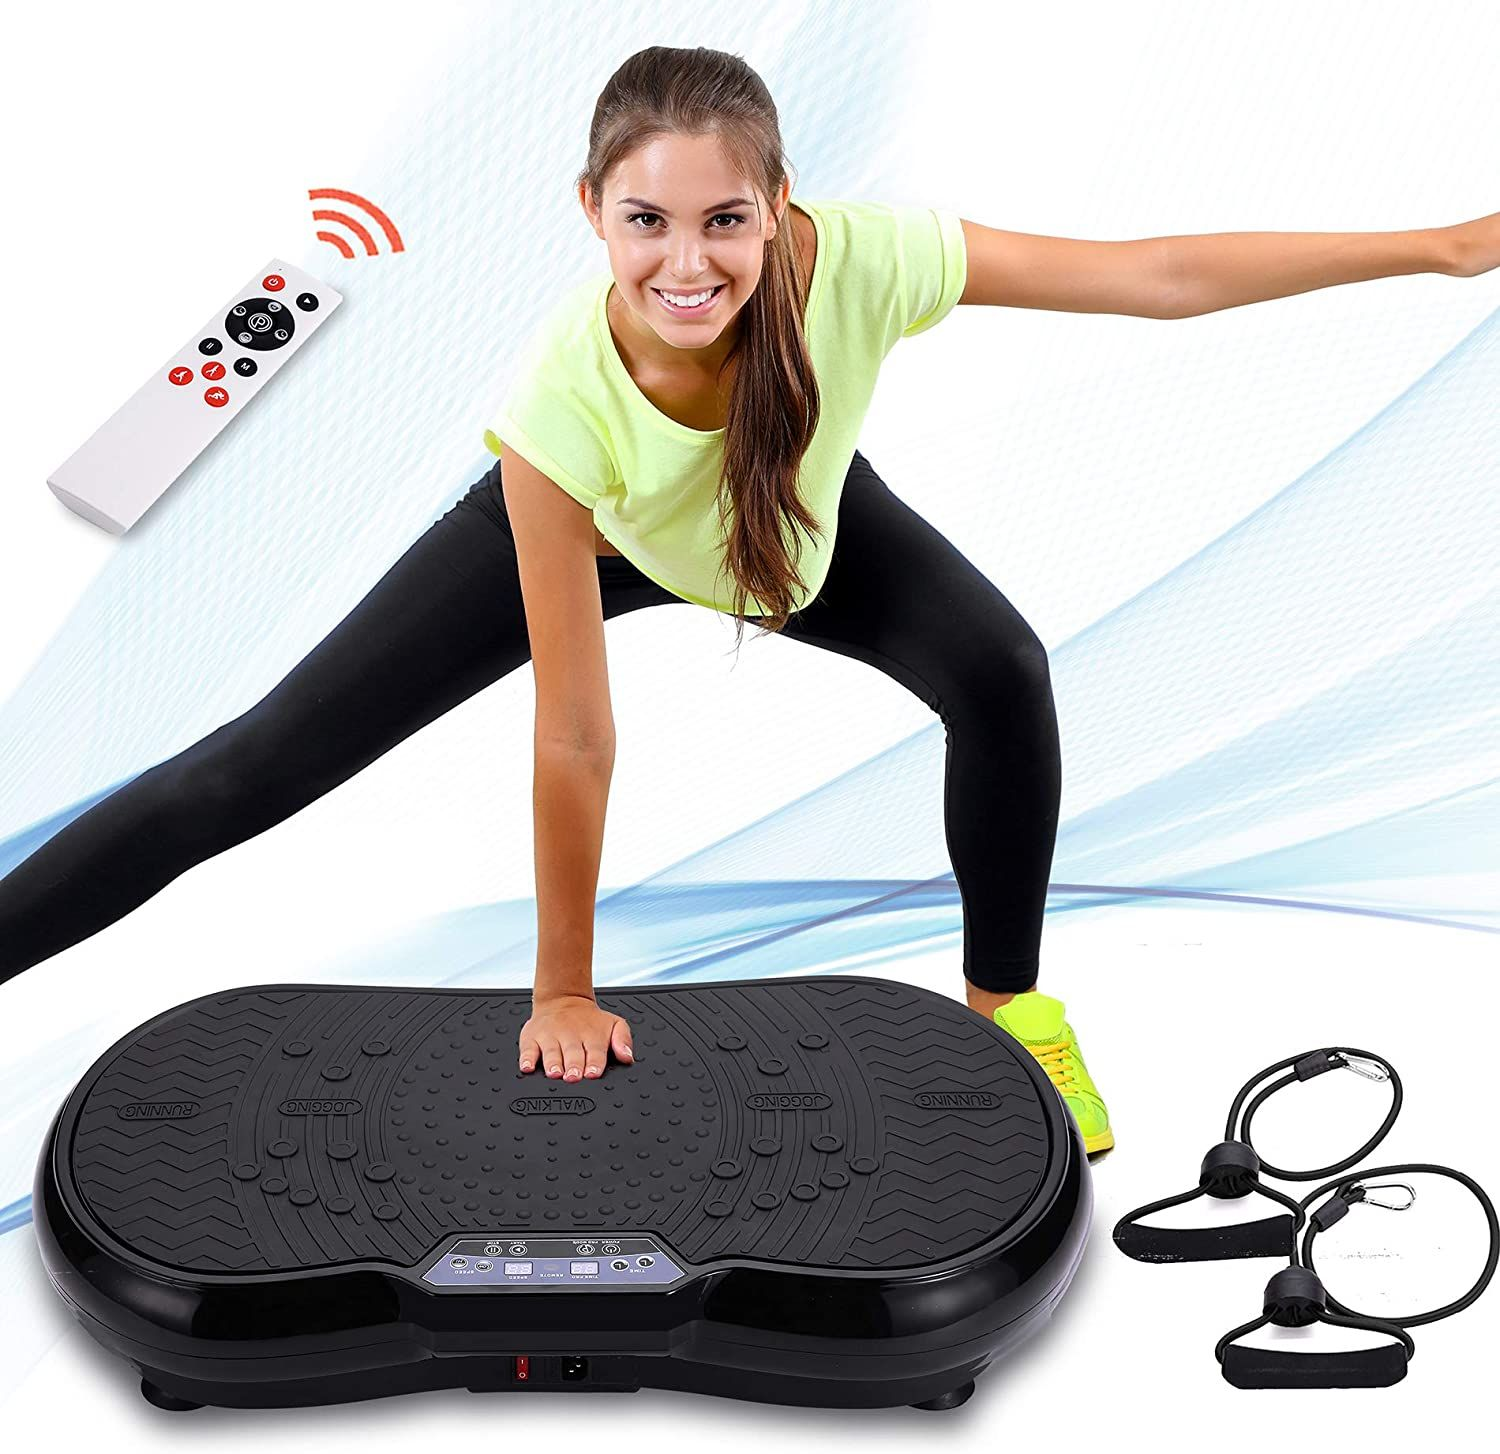 Whole Body 3 Motor 4D Motion Technology SereneLife SLVBX4 Vibrating Platform Exercise Passive Workout Trainer Weight Loss /& Shaping Resistance Band Standing 4D Vibration Plate Exercise Machine